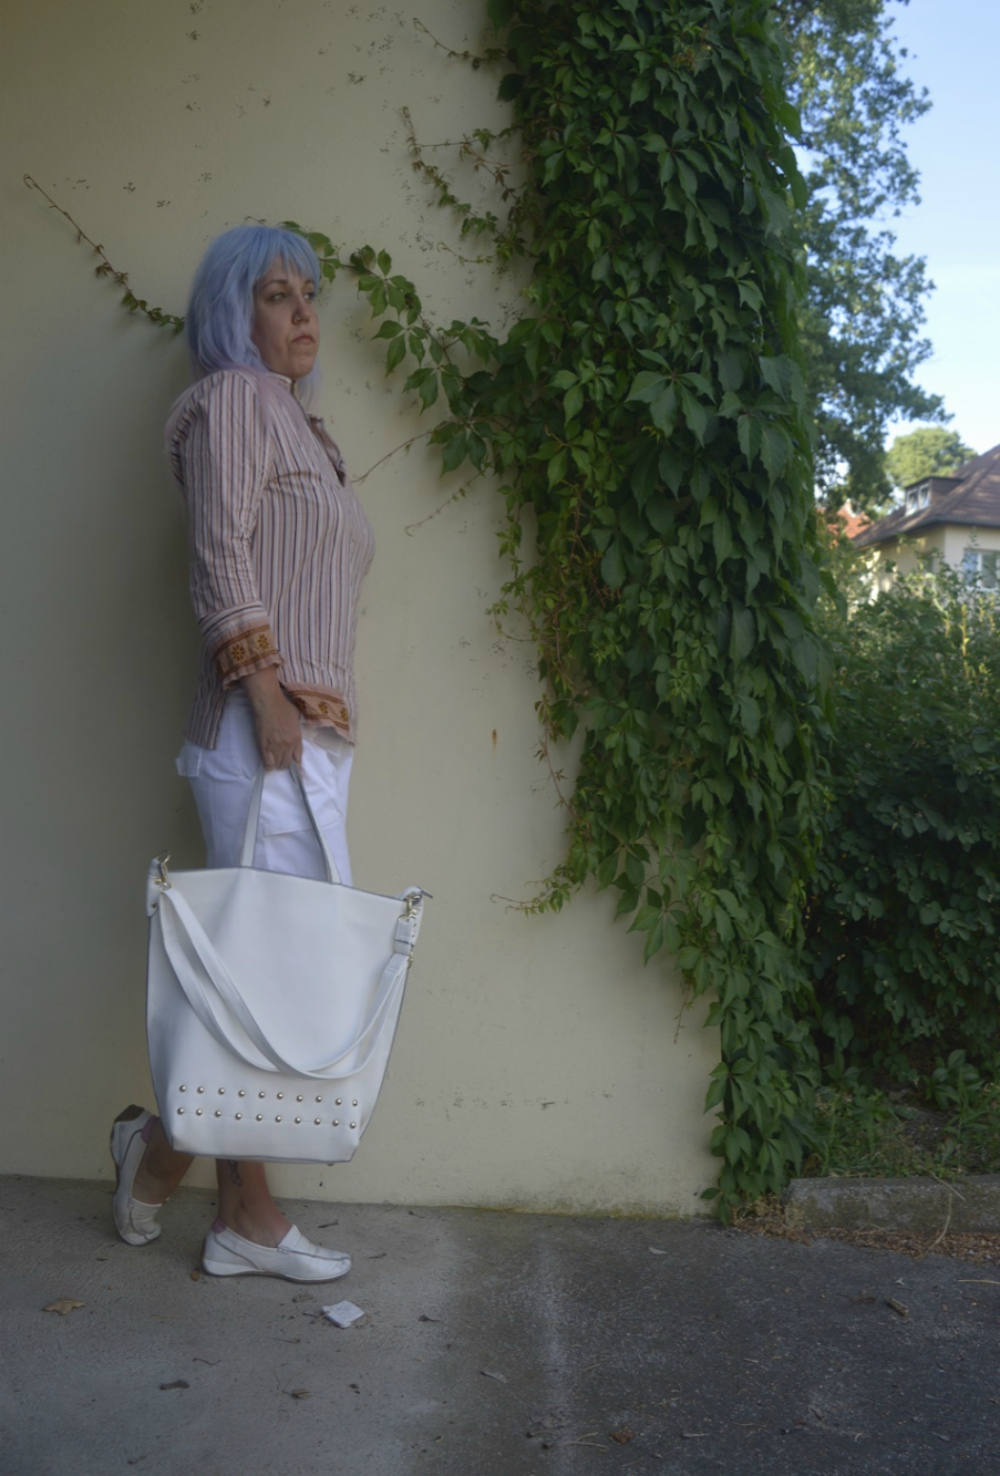 Coloured Striped Shirt and white summer shorts - Sumer Outfit with striped tunica and white shorts, combined with white leather loafers and a big white shopper -  posted by Annie K, Fashion and Lifestyle Blogger, Founder, CEO and writer of ANNIES BEAUTY HOUSE - a german fashion and beauty blog